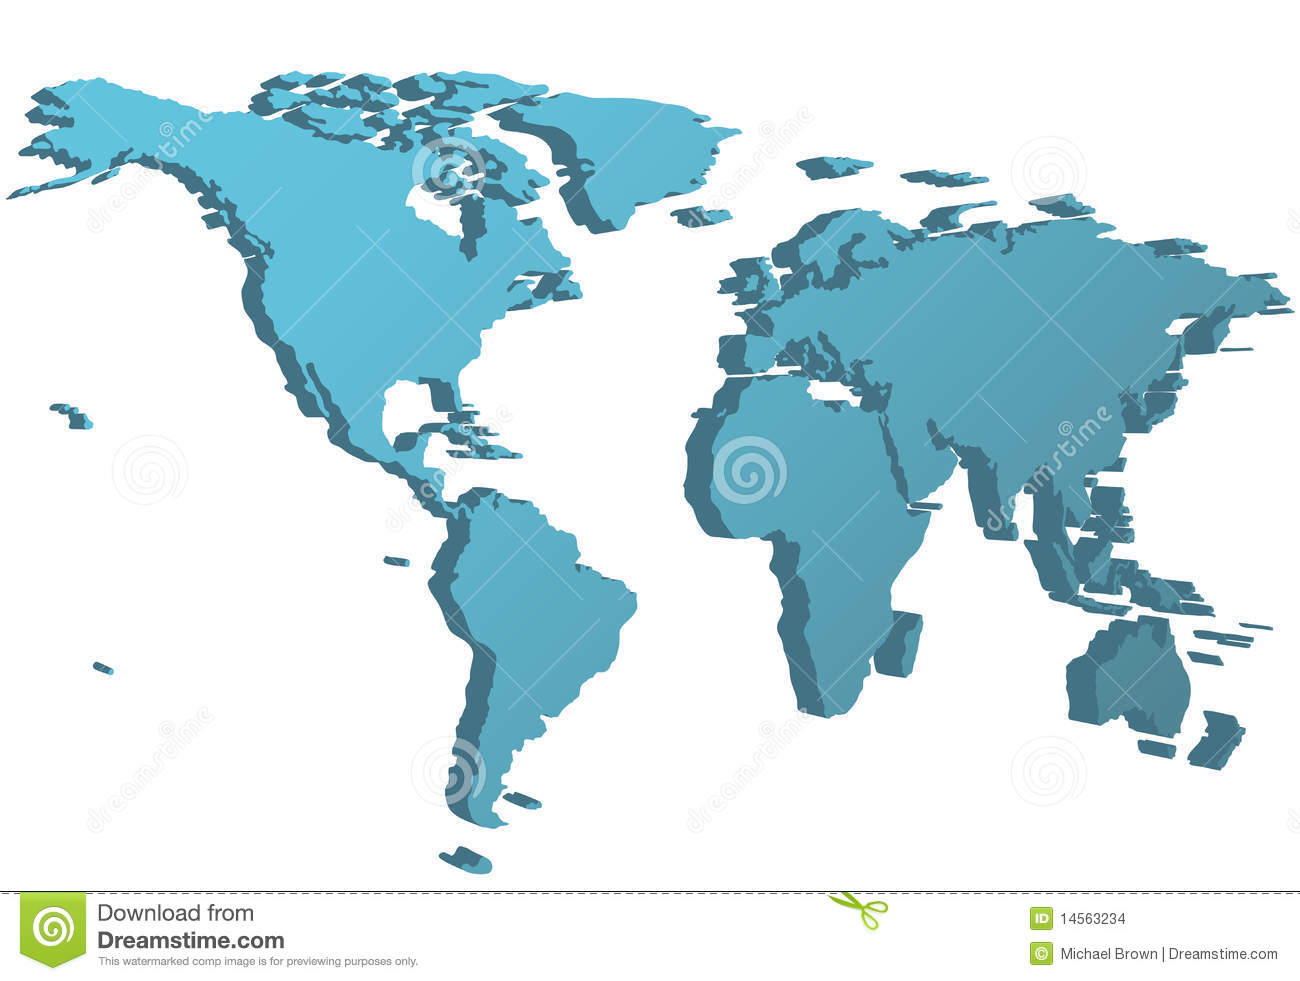 World side view map 3d perspective on earth stock vector world side view map 3d perspective on earth gumiabroncs Image collections